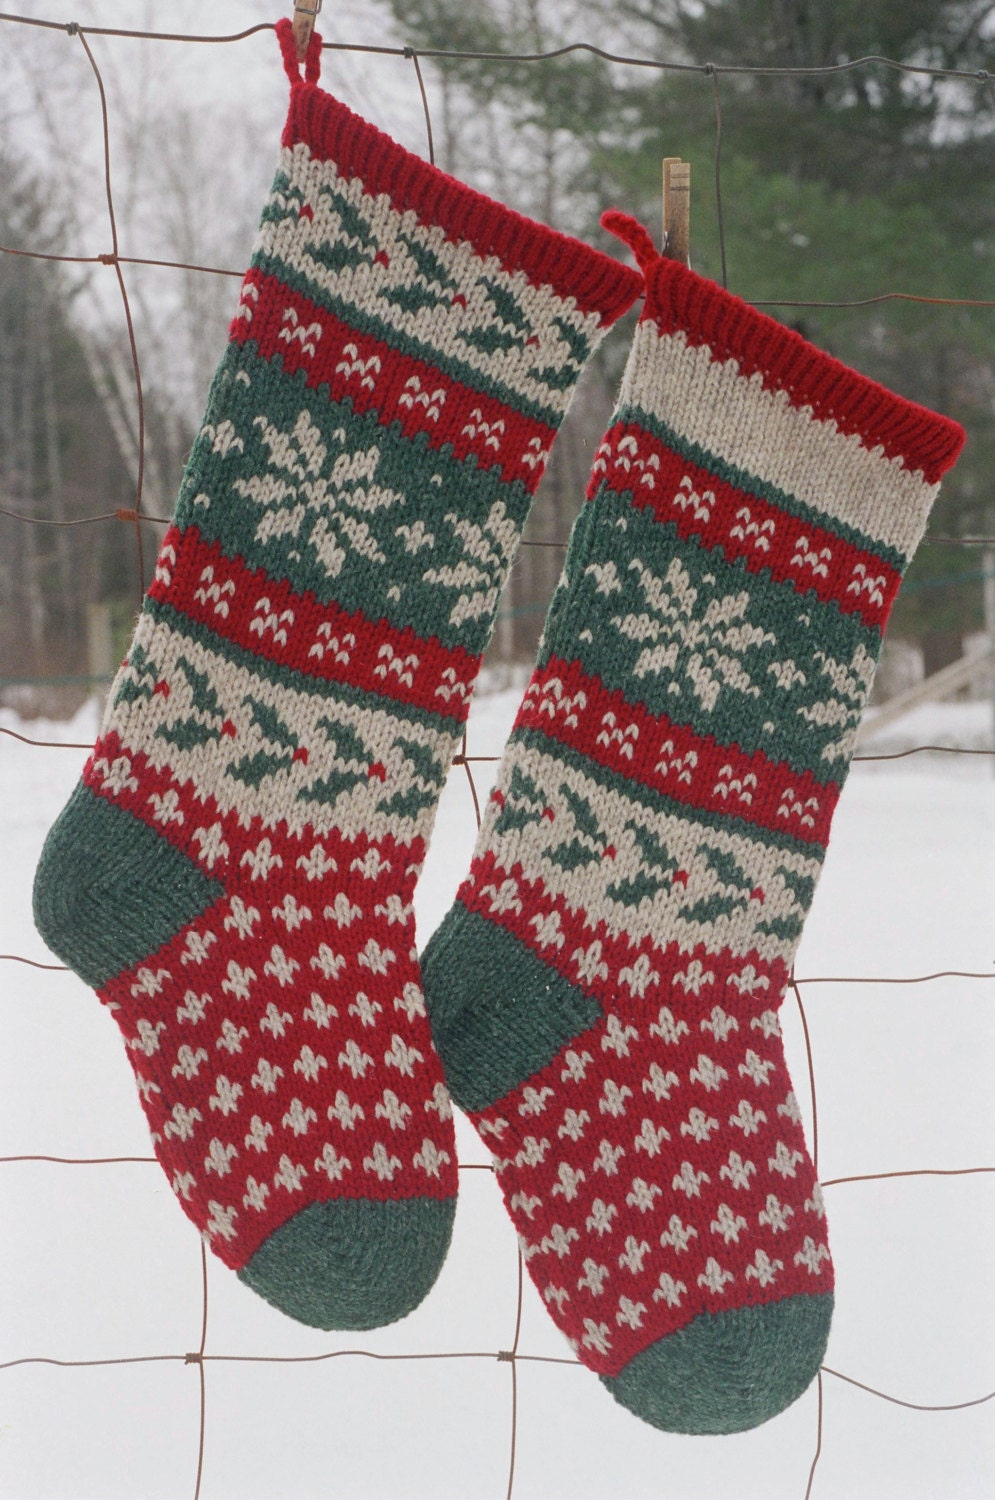 Christmas Stocking Knitting Pattern Circular Needles : HOLLY Stocking Knitting Pattern Downloadable Christmas